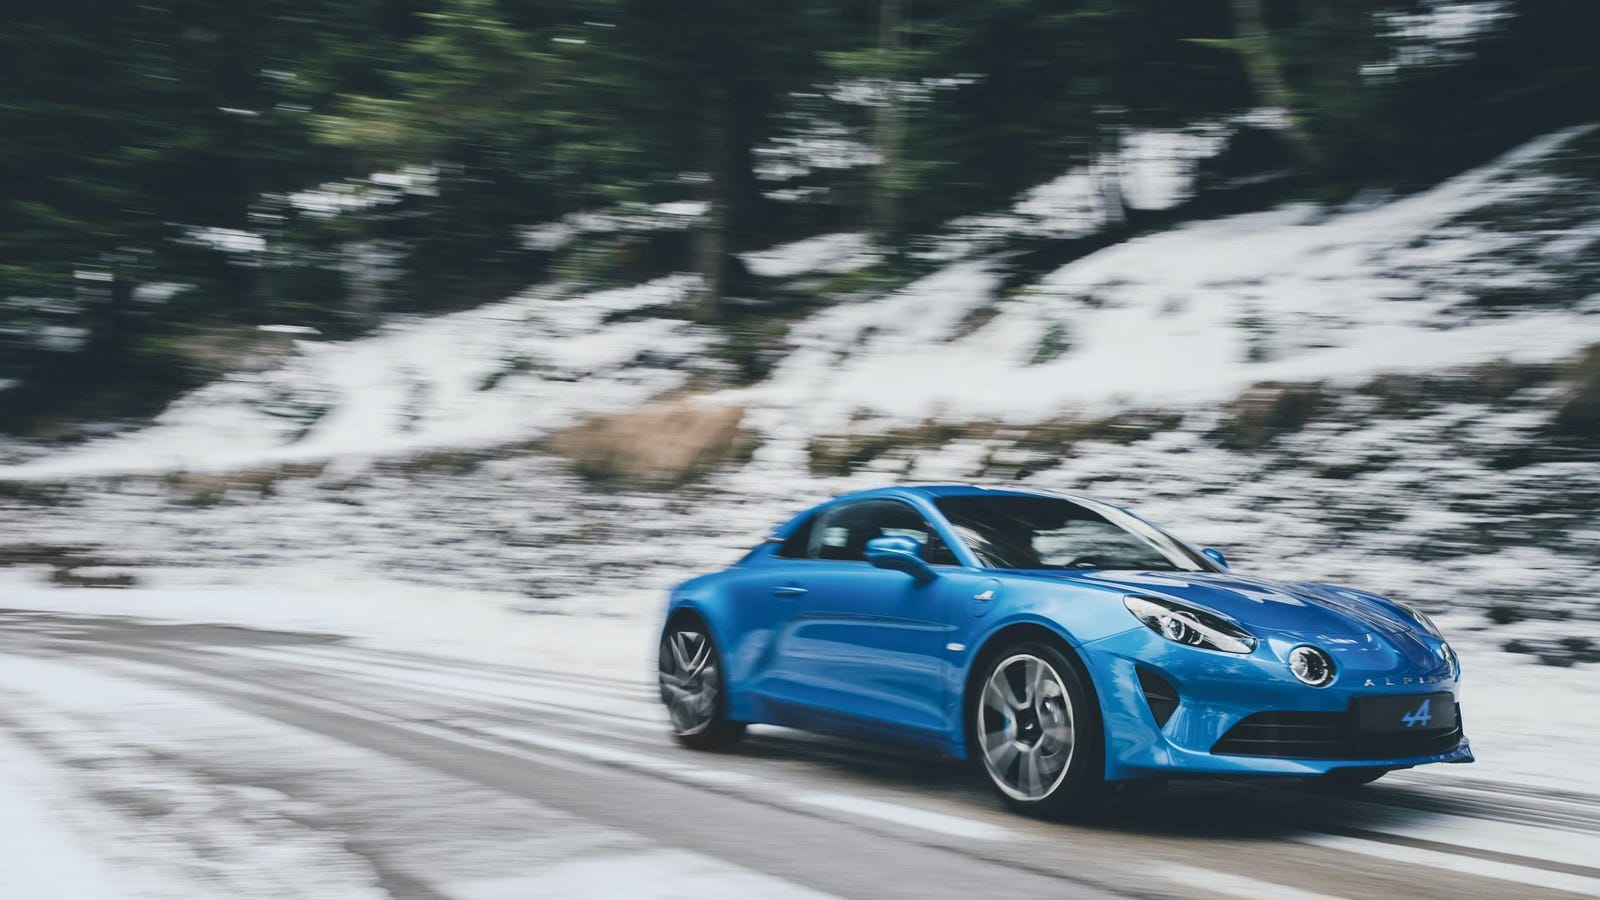 Here's 16 Minutes Of The New Alpine A110's Engine Sounding Absolutely Ferocious